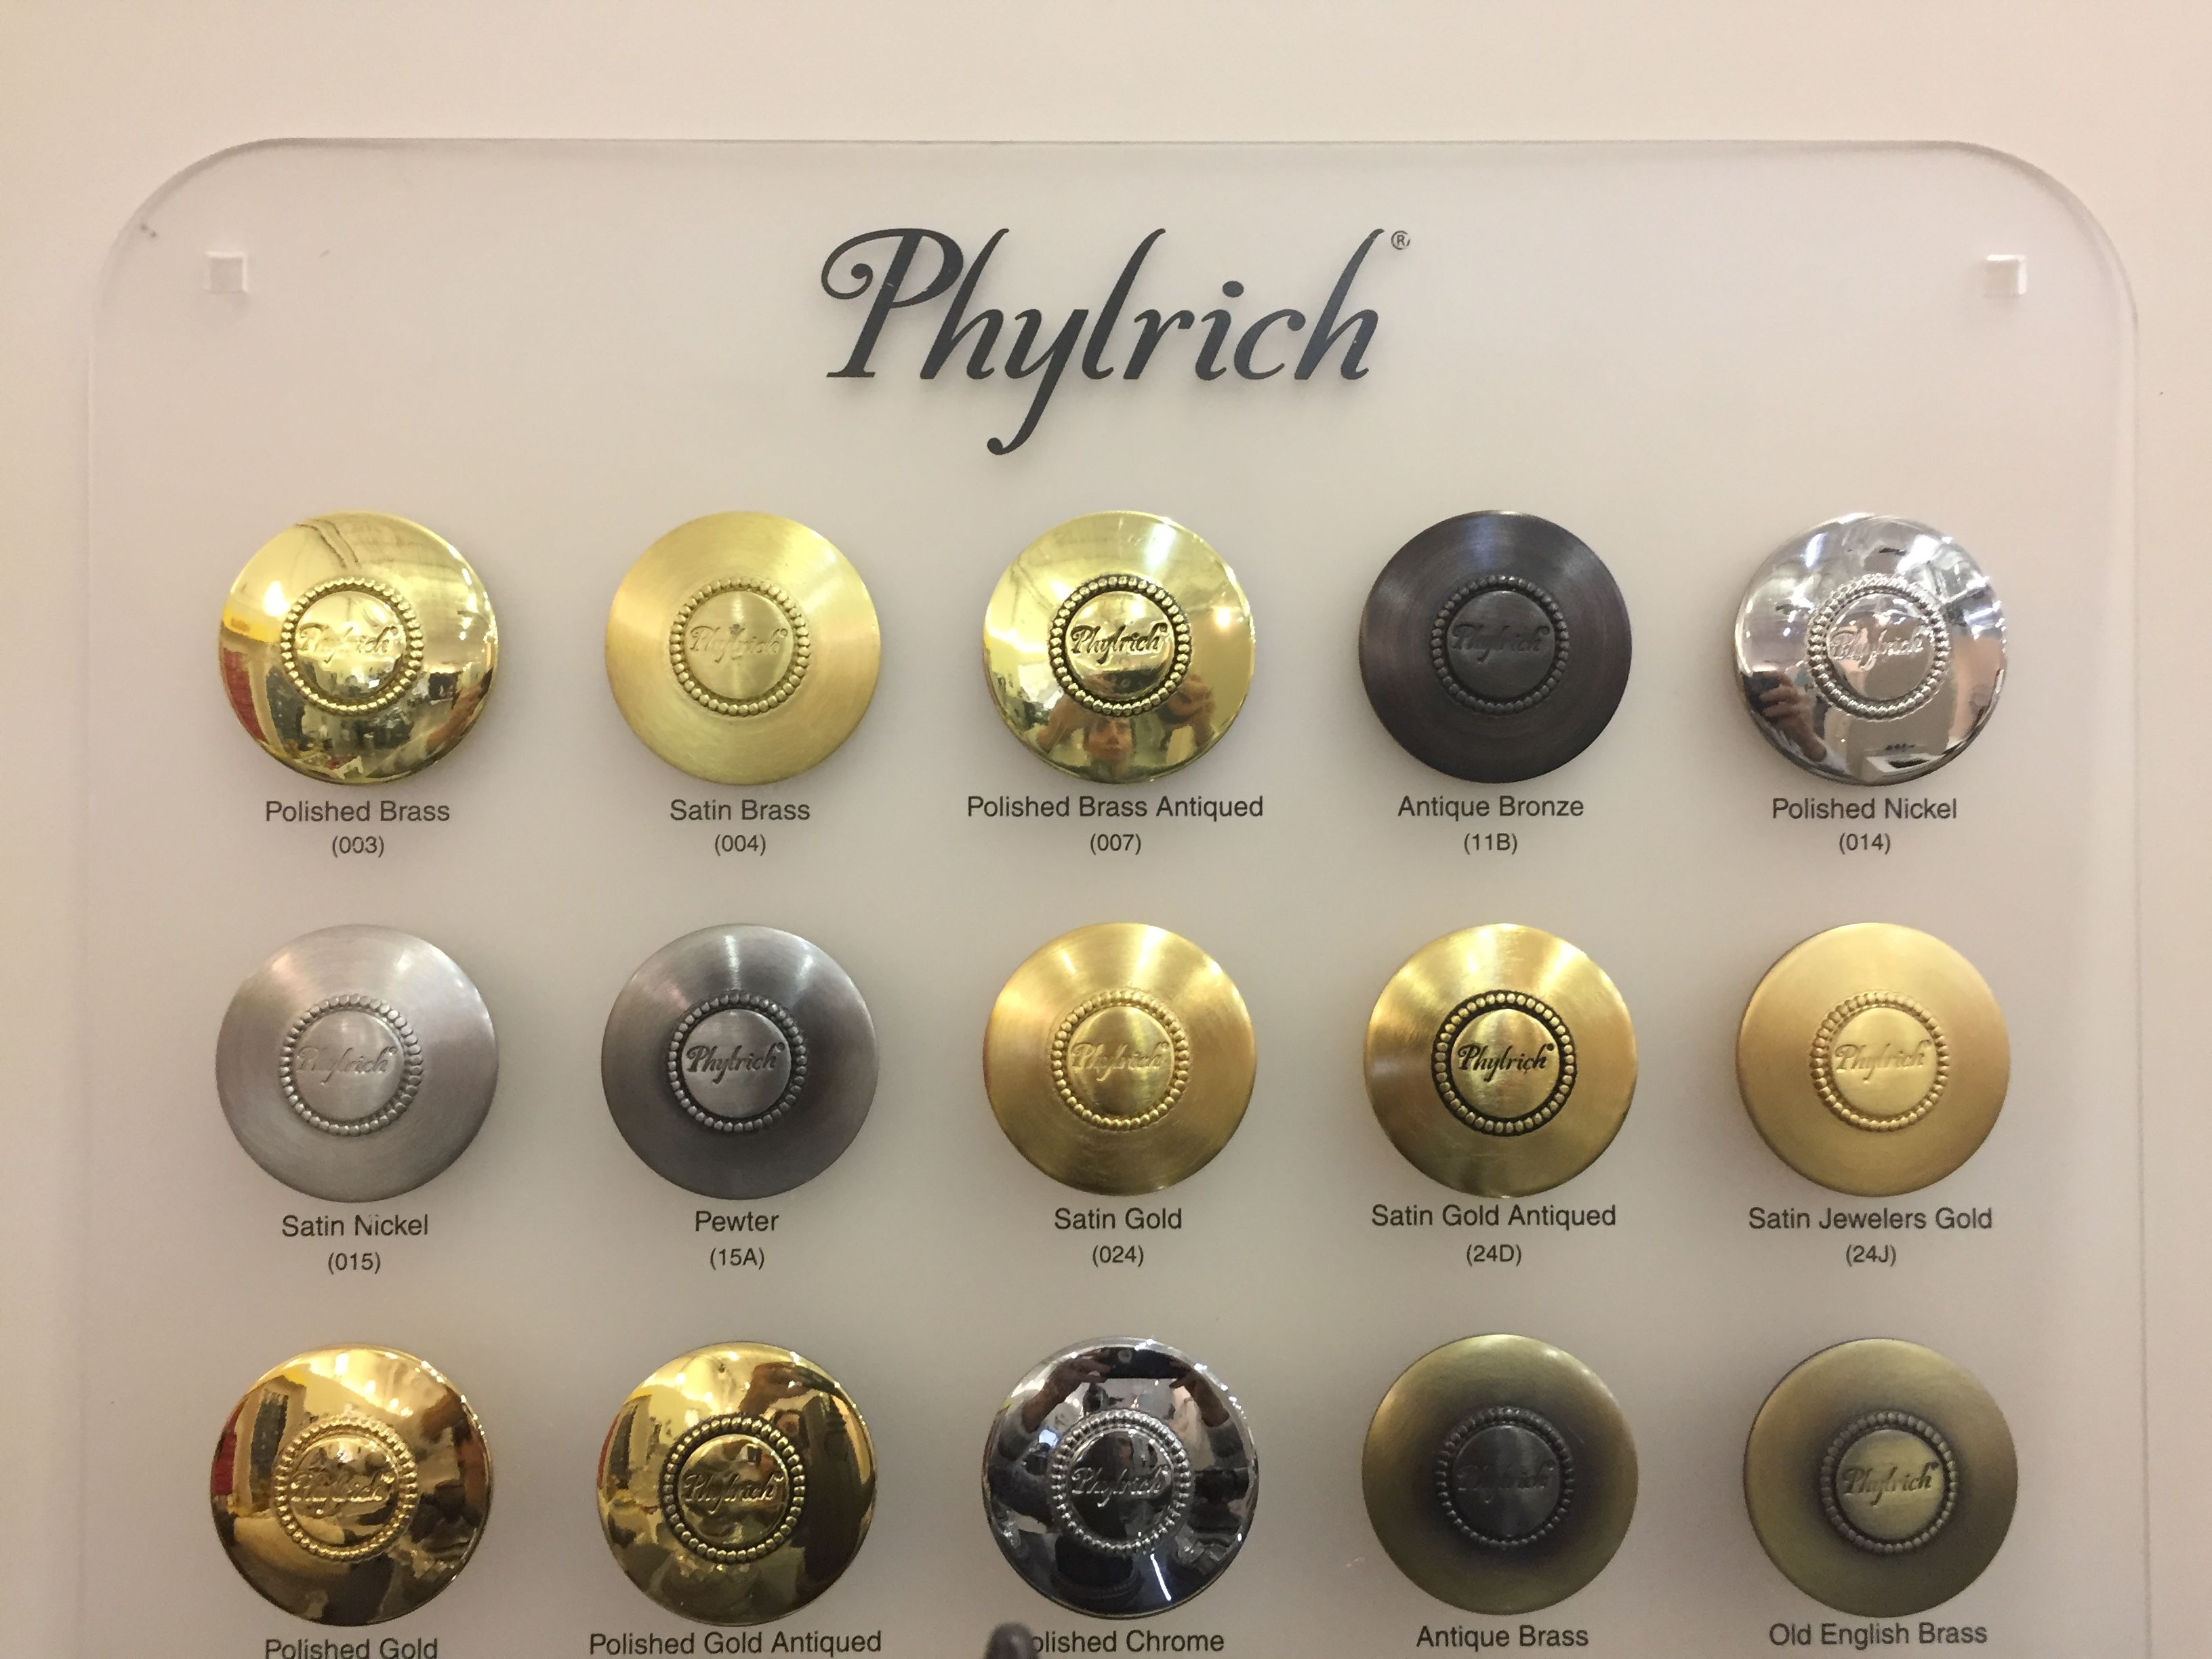 Phylrich Satin Brass Top Second From Left Master Bath